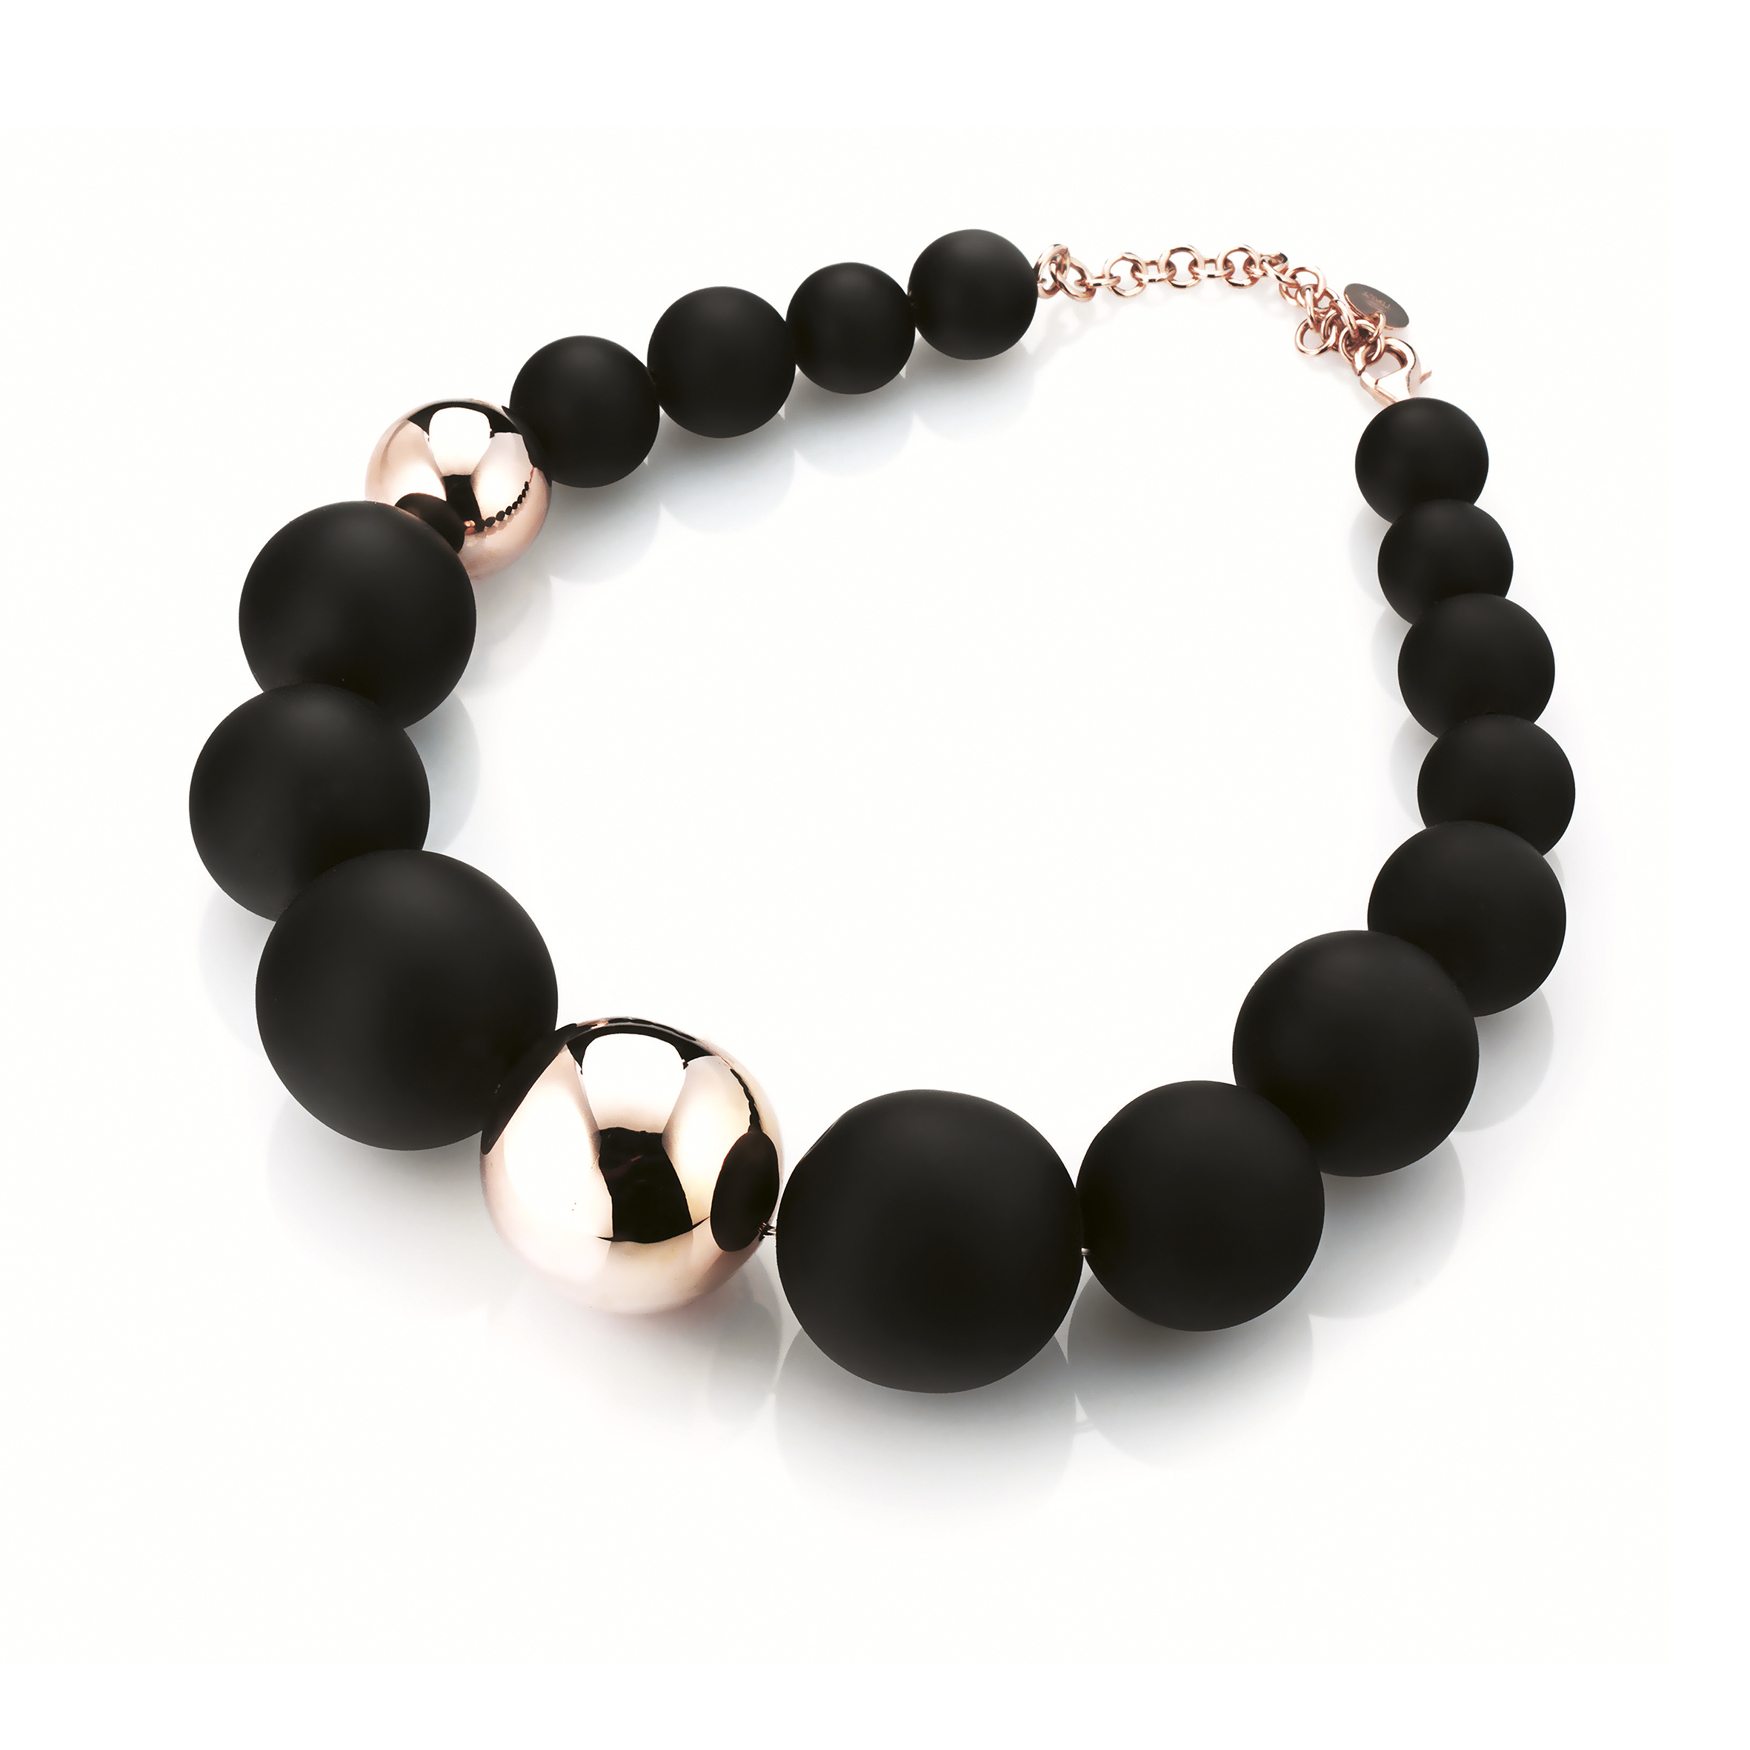 Sensi joyas jewellery Granada silver engagementSILVER NECKLACE WITH ROSE GOLD COATING AND RUBBER